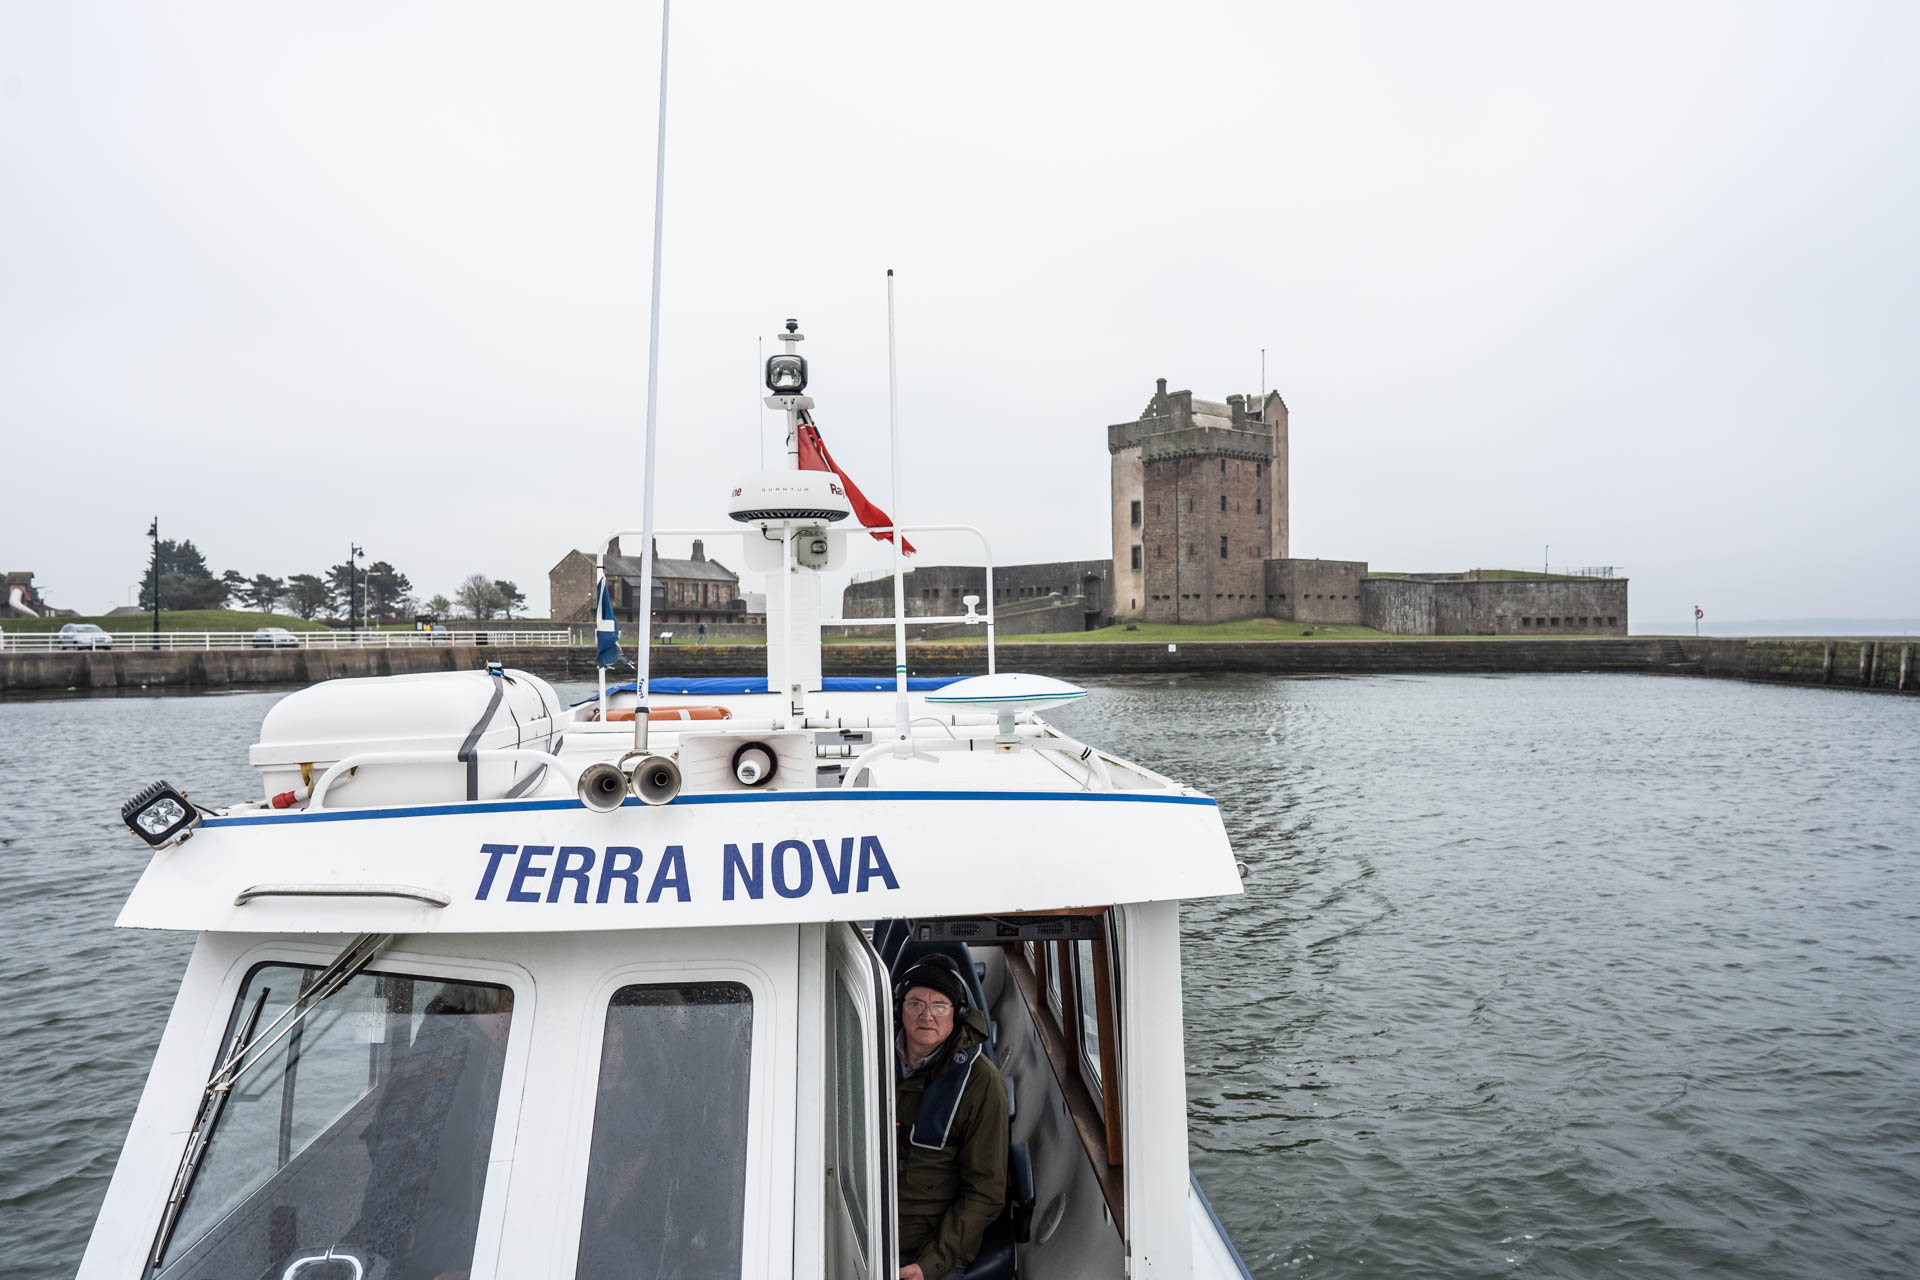 Perth Cruise - Starting at Broughty Ferry Harbour this trip will take you up the River Tay where you will pass under the Tay Road and Rail Bridges, past the V&A and up the river where you can enjoy a trip to the Fair City of Perth.